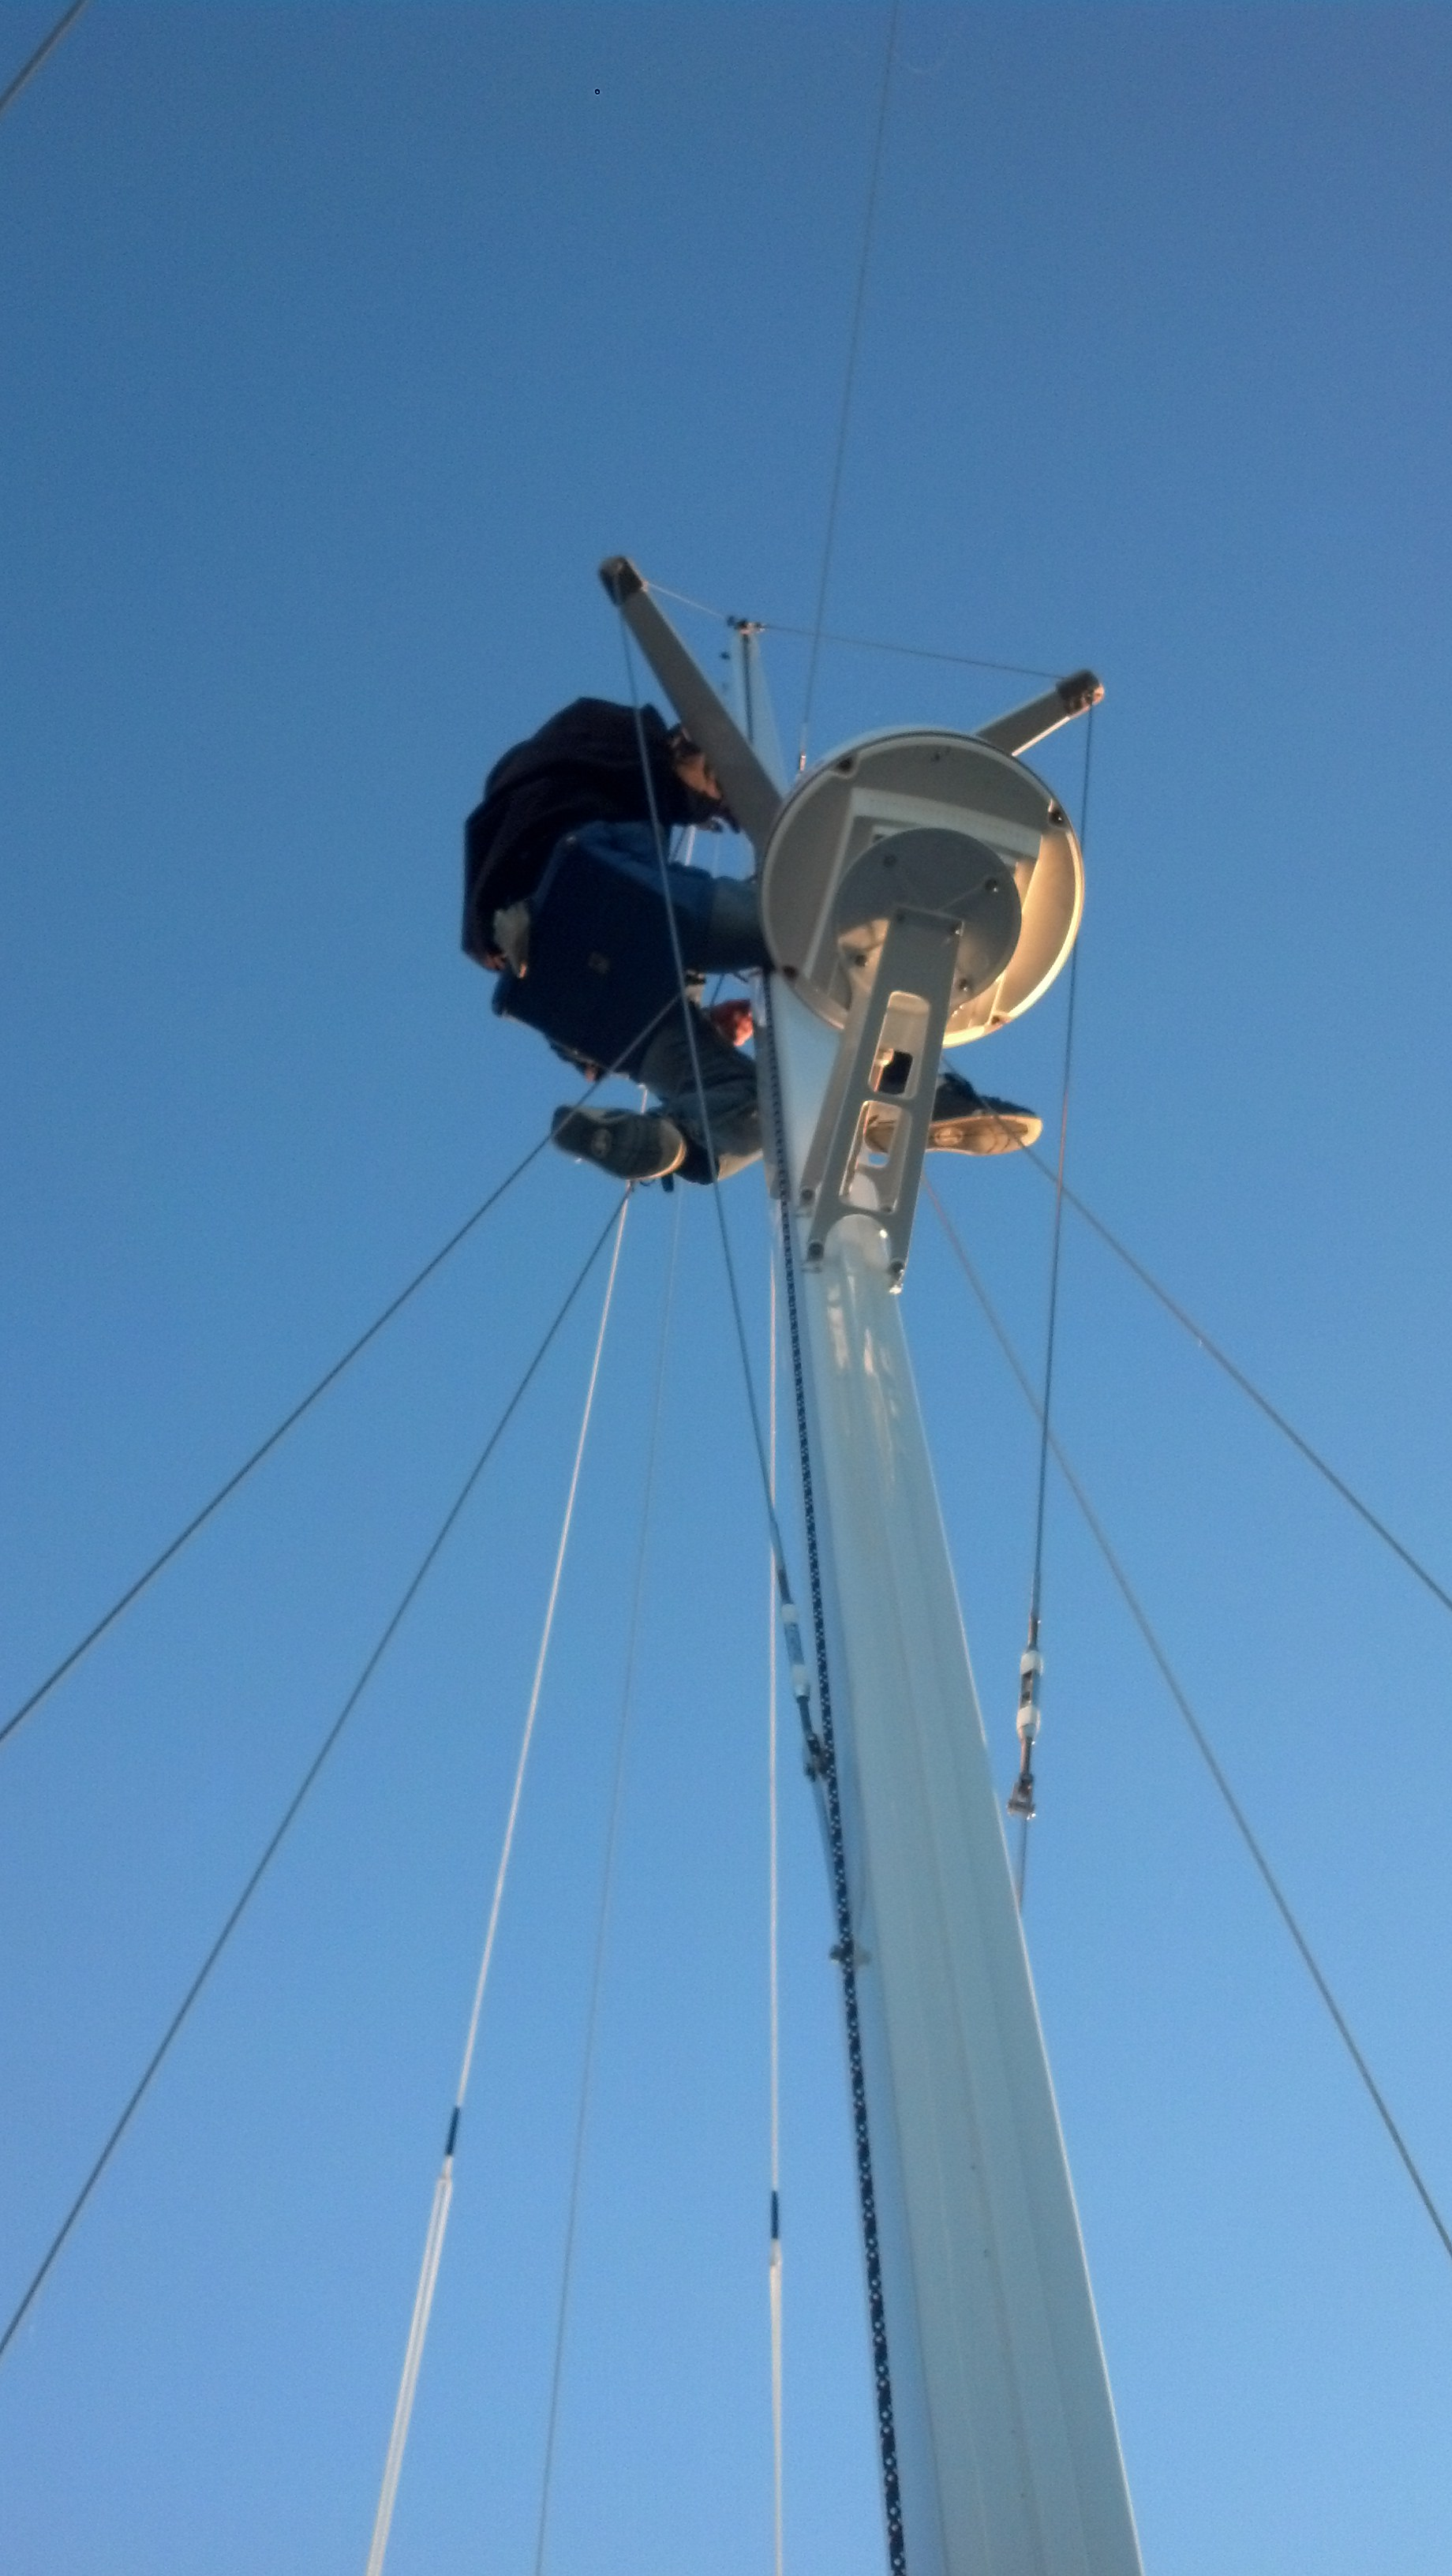 Going Aloft Like the Pros – The Rigging Company